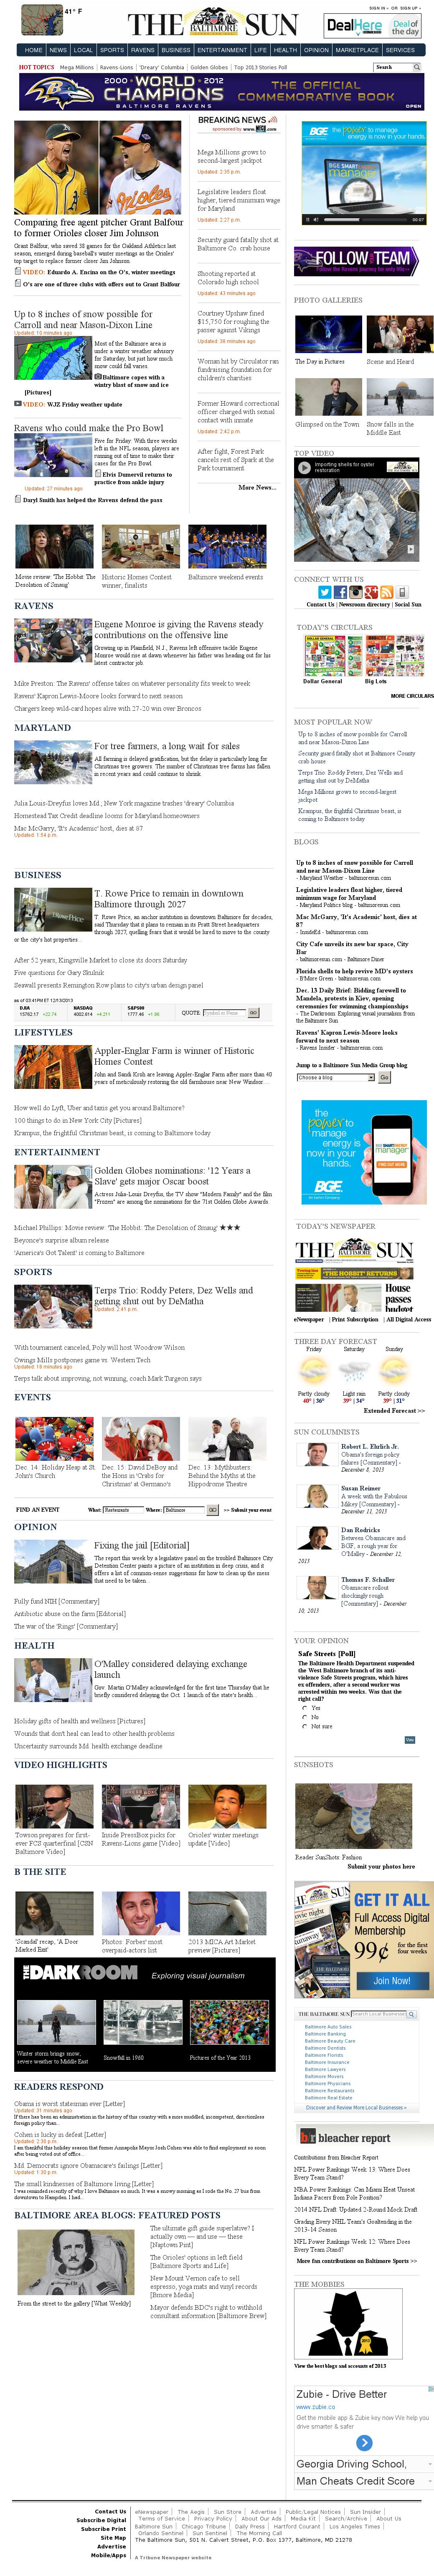 The Baltimore Sun at Friday Dec. 13, 2013, 9 p.m. UTC